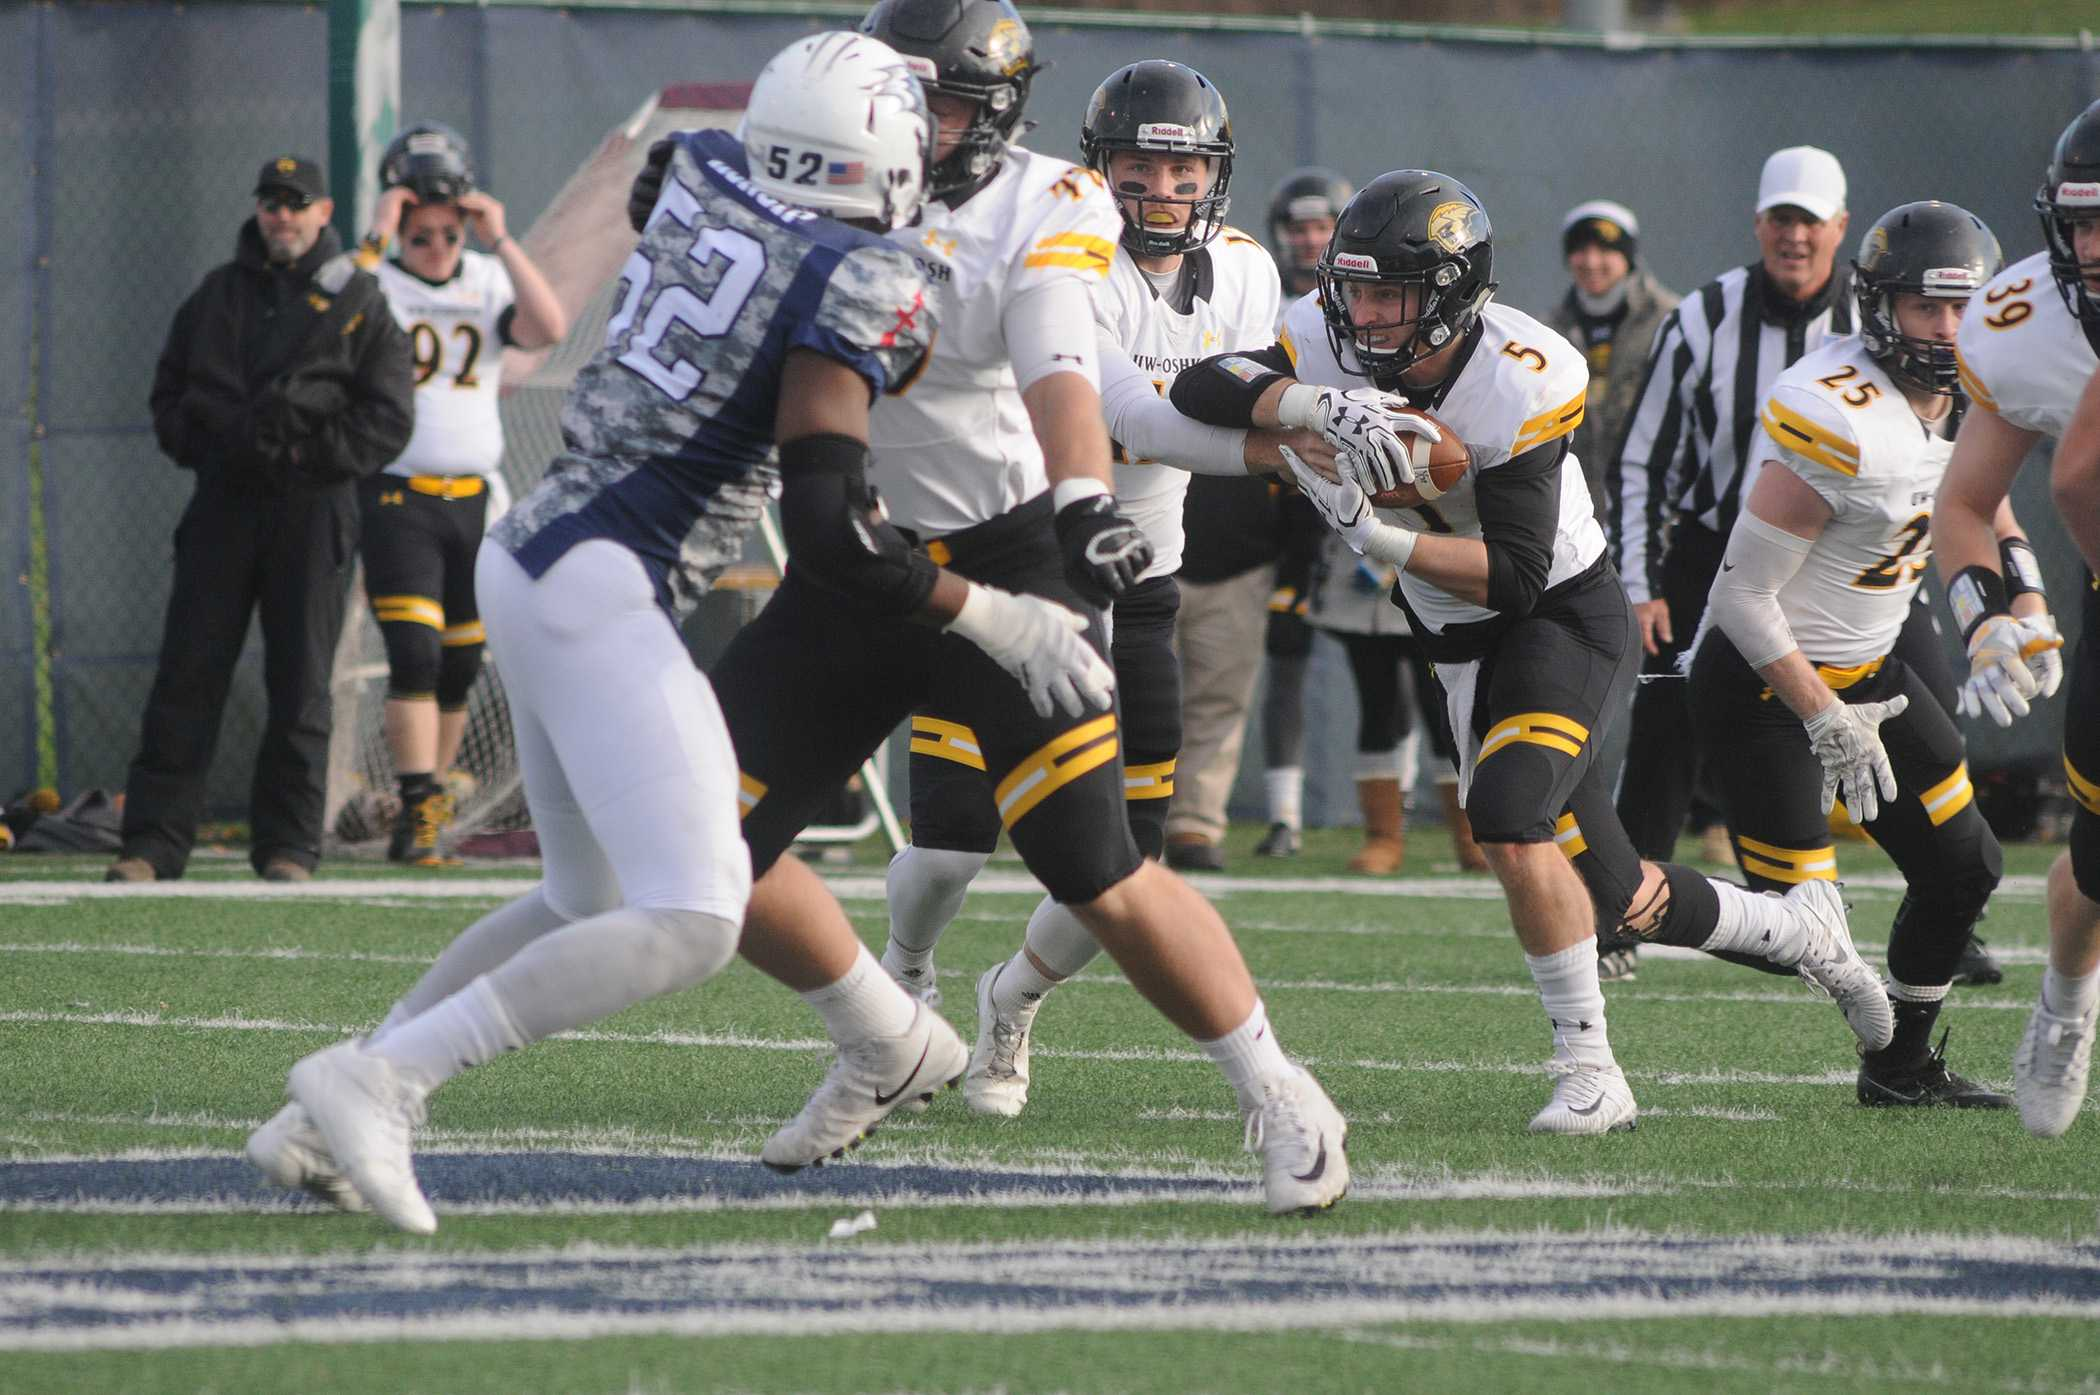 Undefeated season helps push UWO to playoffs